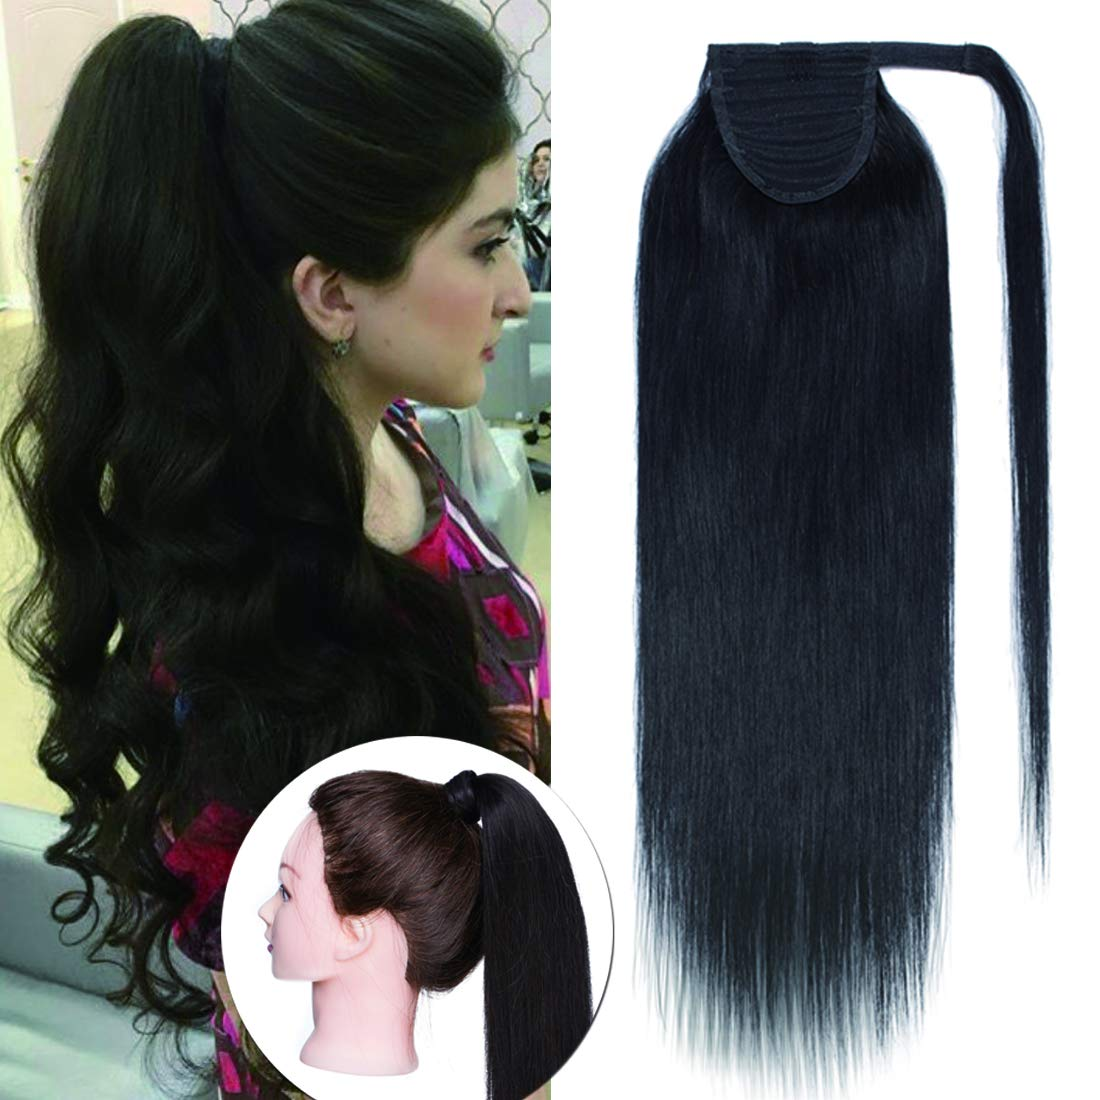 SEGO Ponytail Extension Human Hair Pony Tails Hair Extensions Wrap Around Ponytail Hair Extensions 100% Real Remy Hair With Magic Paste Long Straight For Women #1B Natual Black 95g 20 Inch